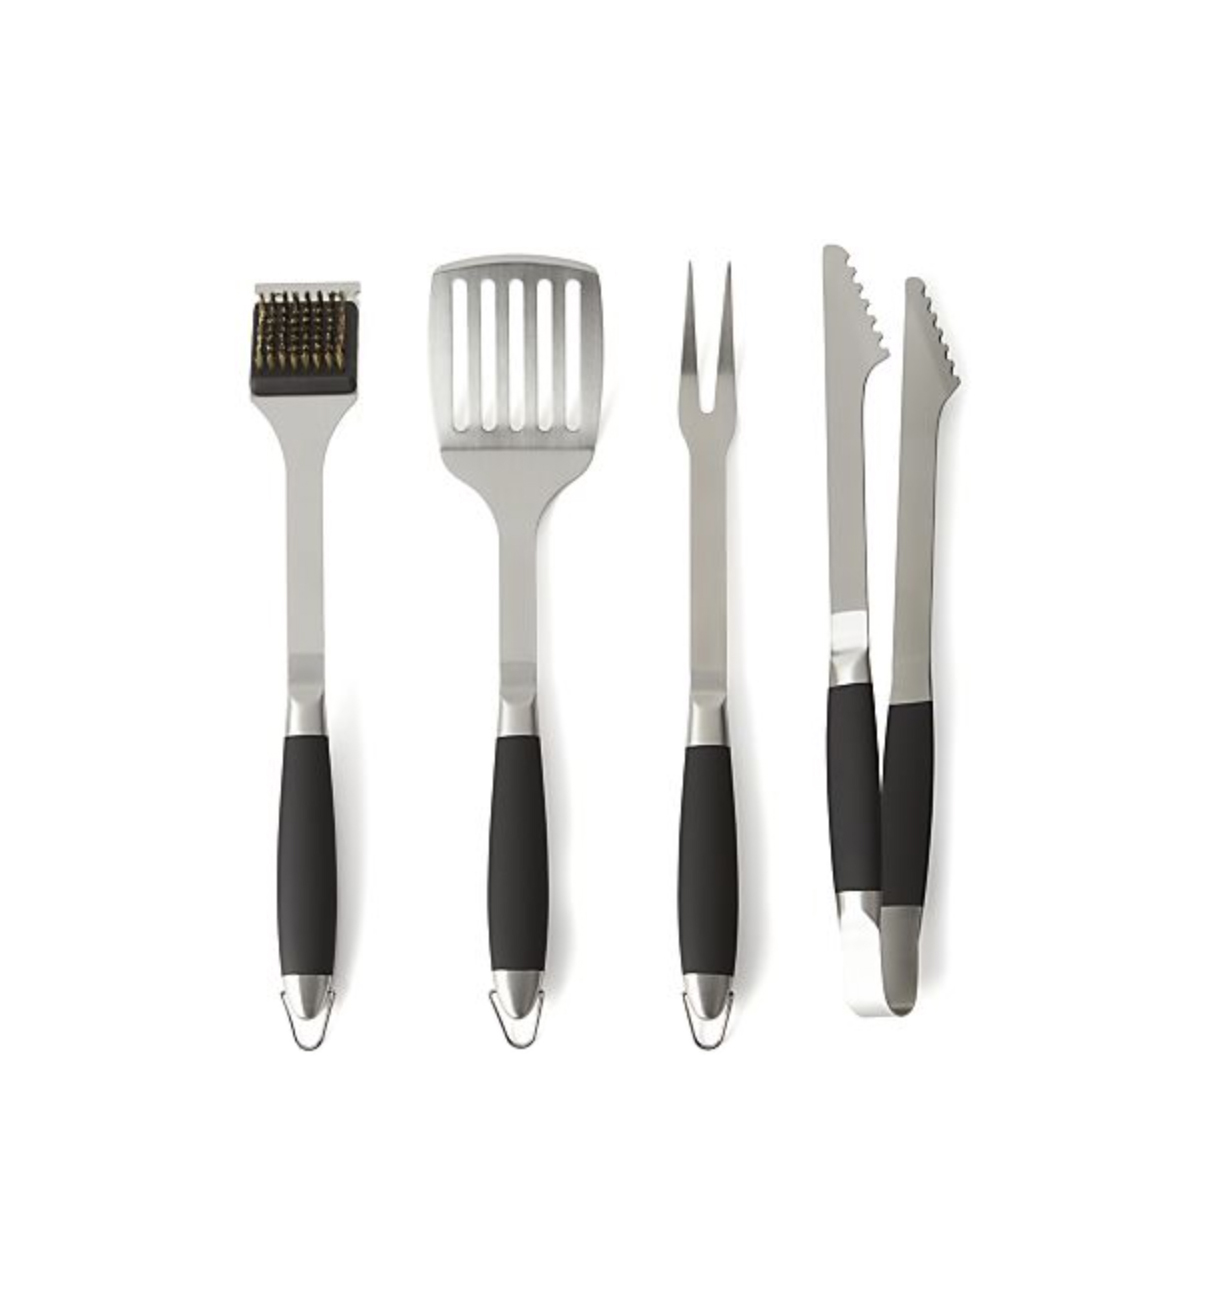 Four-Piece Barbecue Tool Set